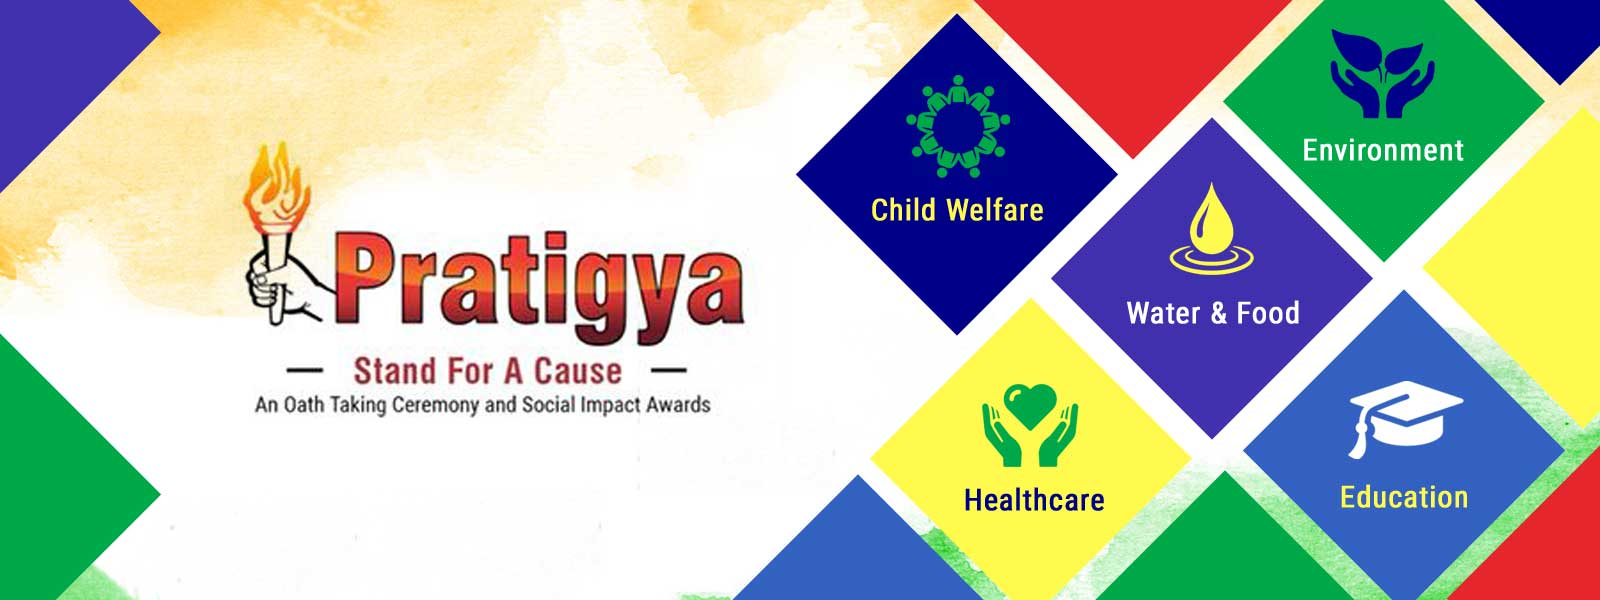 PRATIGYA - An Oath Taking Ceremony and Social Impact Awards